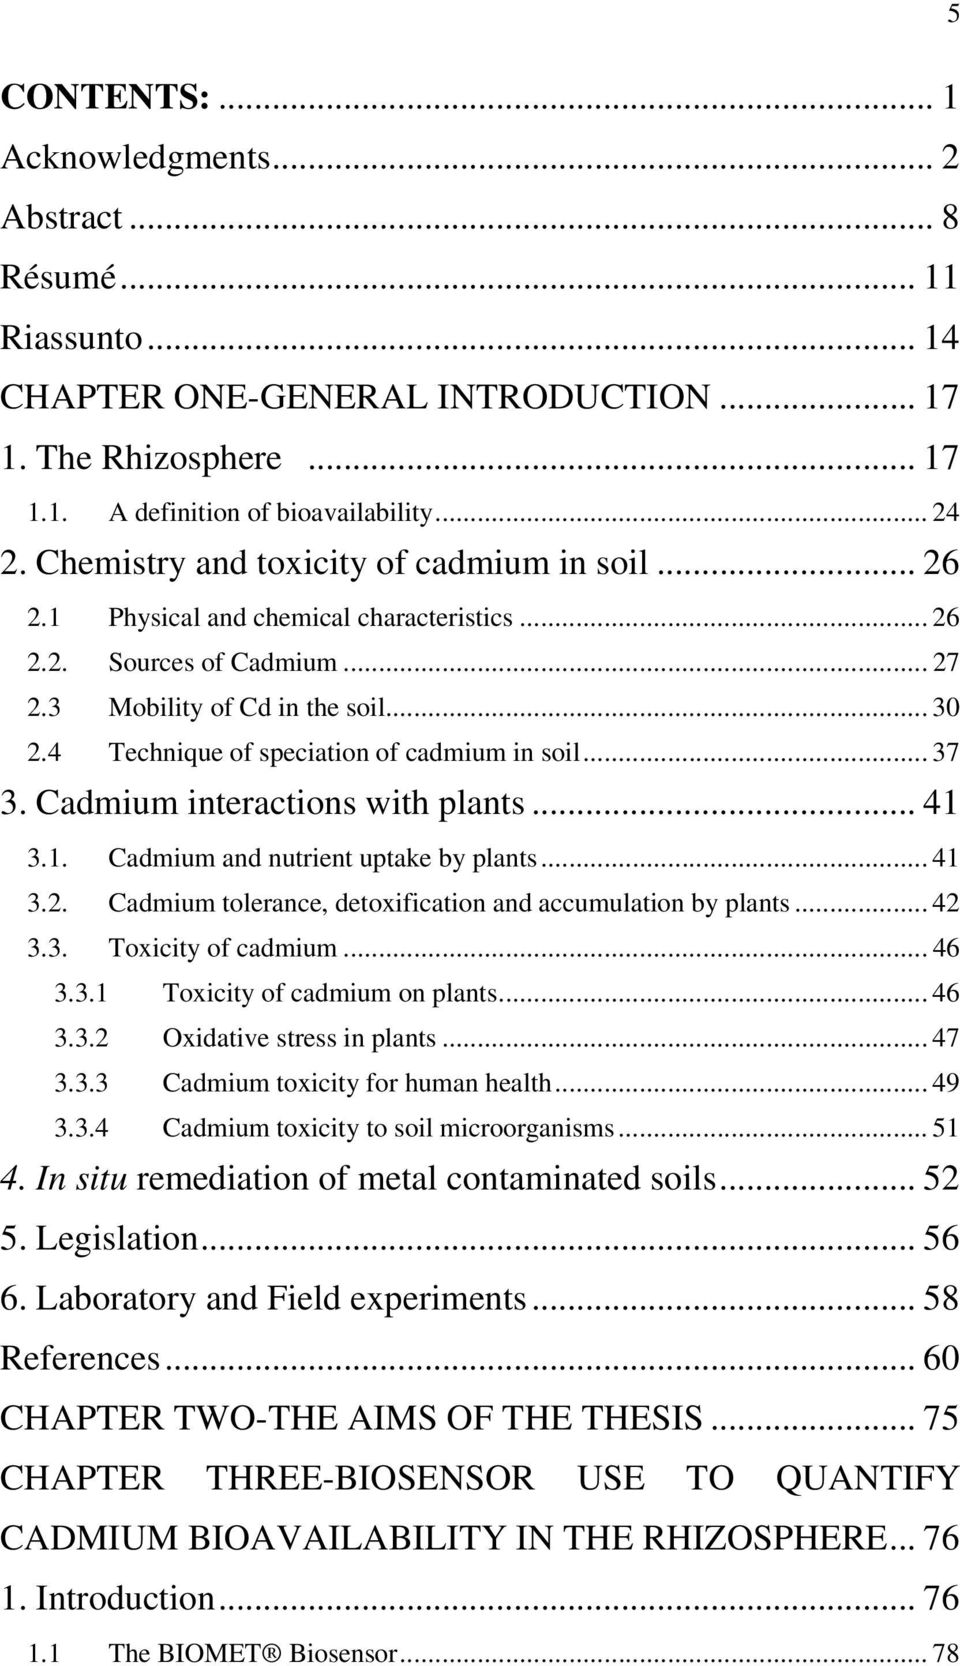 4 Technique of speciation of cadmium in soil... 37 3. Cadmium interactions with plants... 41 3.1. Cadmium and nutrient uptake by plants... 41 3.2.